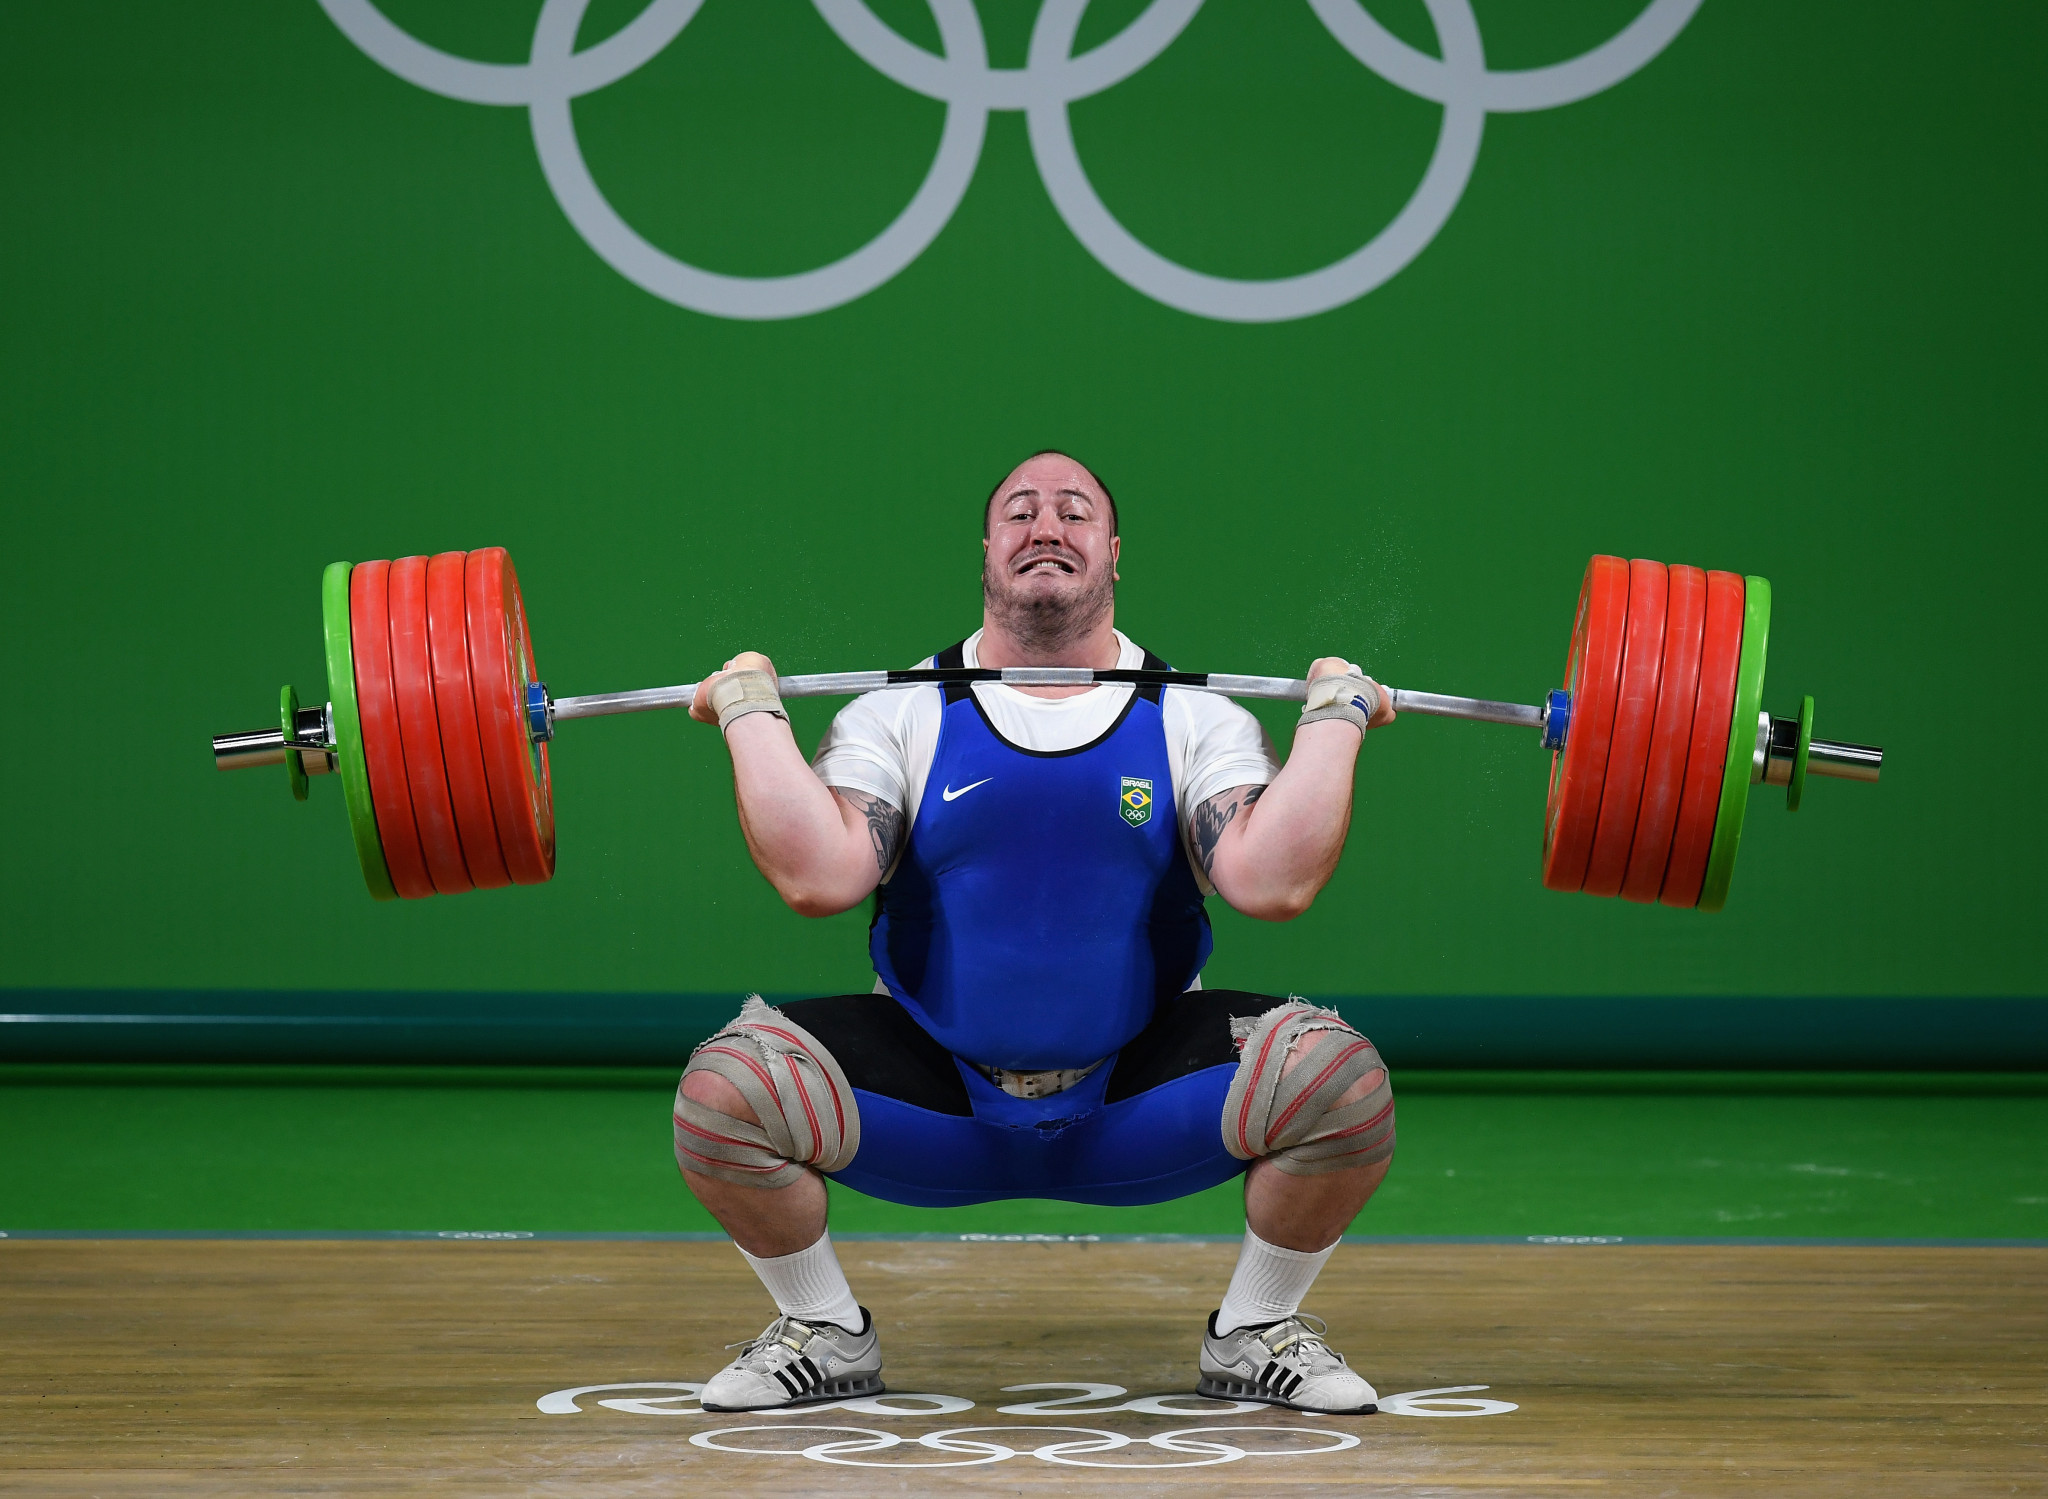 Fernando Reis is hoping to become the first Brazilian to win an Olympic weightlifting medal at Tokyo 2020 ©Getty Images